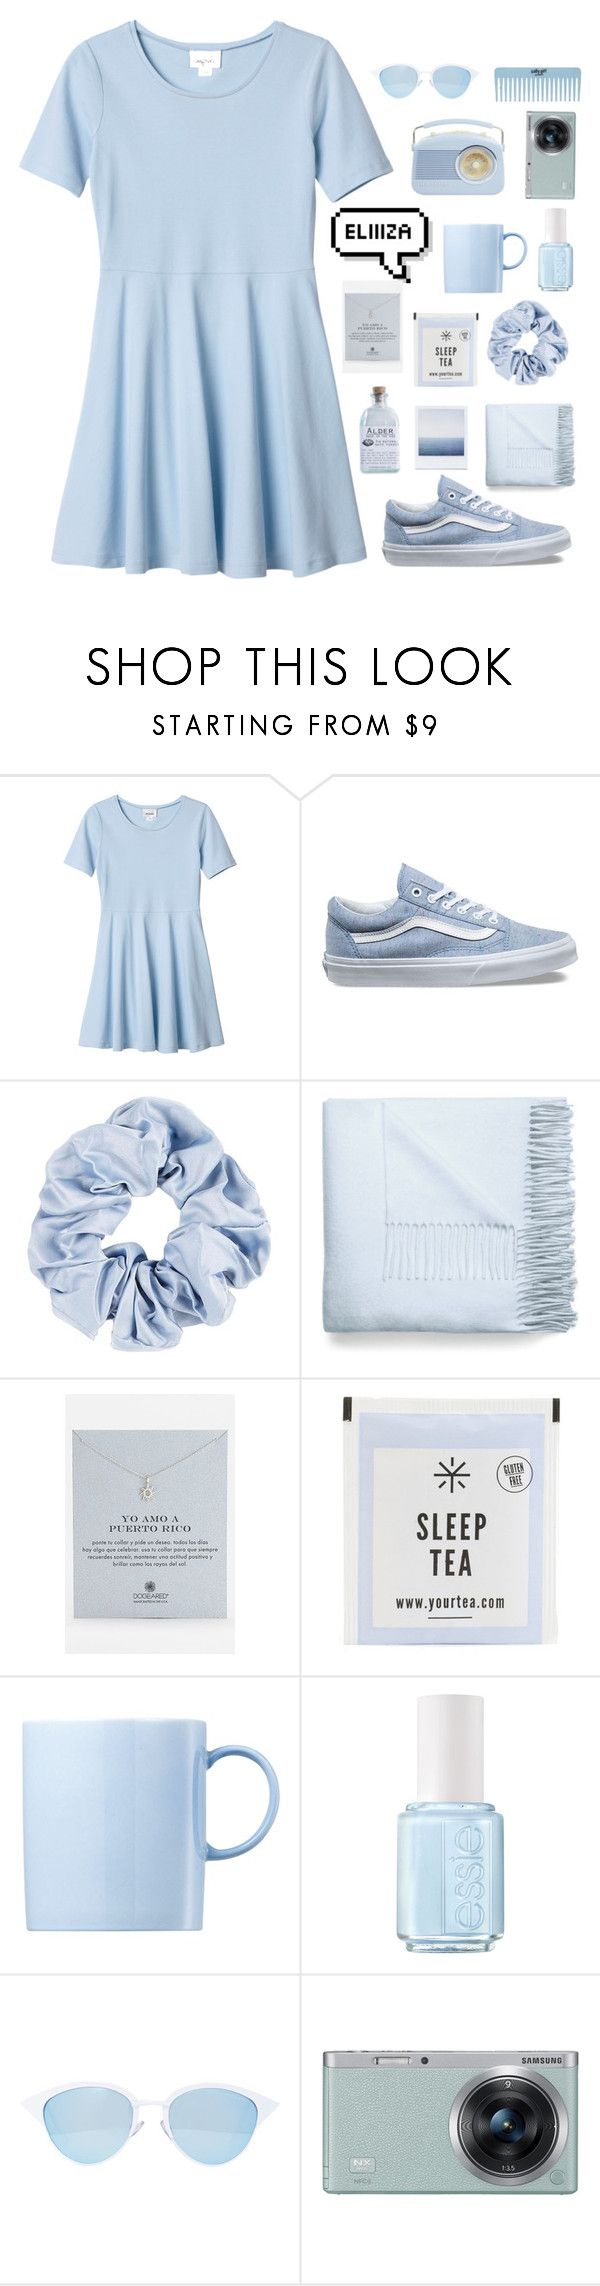 """""""eliza"""" by fashion1oh1 ❤ liked on Polyvore featuring Monki, Vans, Acne Studios, Dogeared, Alder New York, Rosenthal, Essie, Quay and Samsung"""